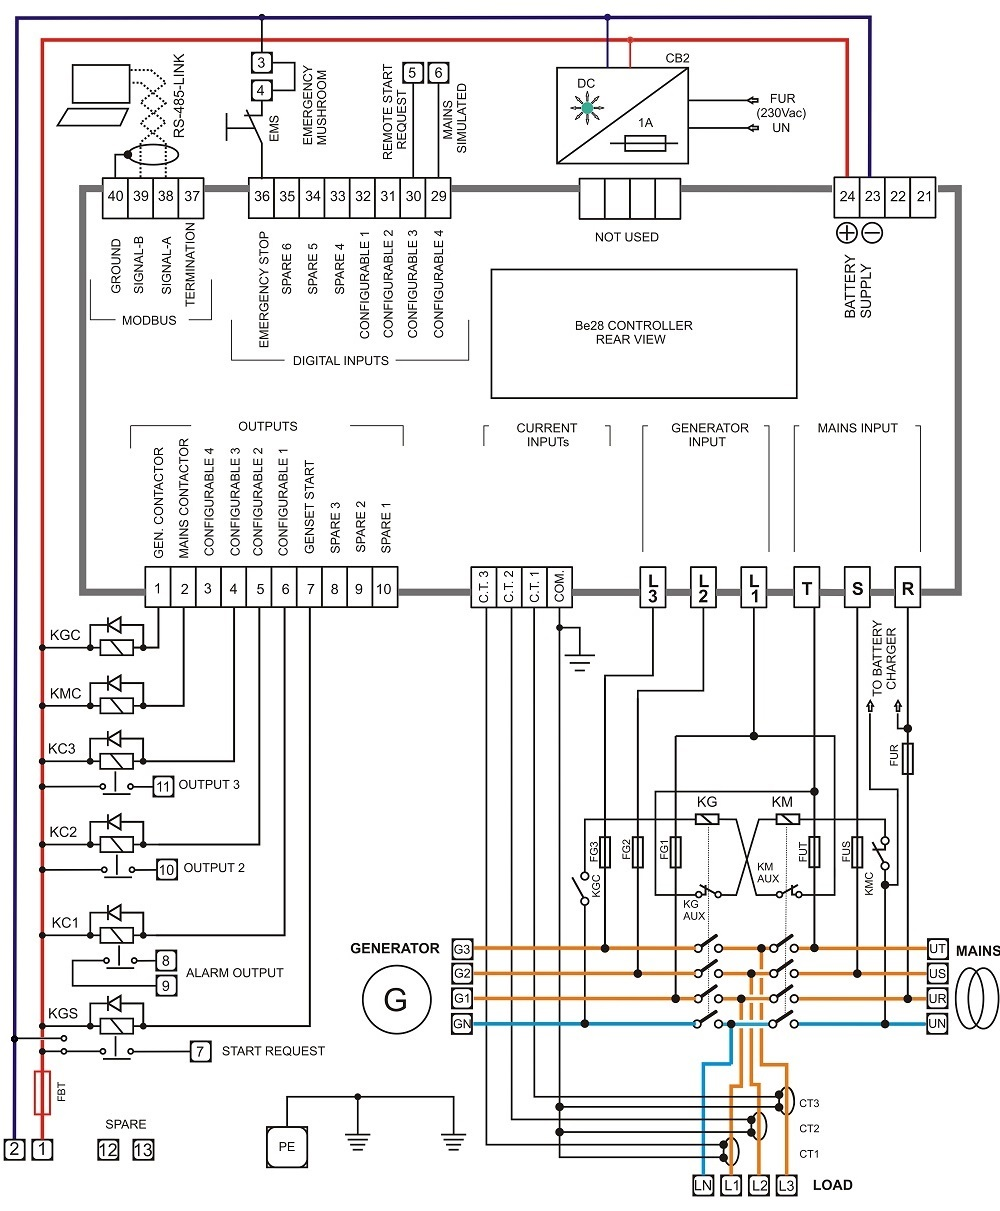 60kVA ATS PANEL WIRING DIAGRAM ats panel wiring diagram automatic changeover switch wiring automatic changeover switch wiring diagram at eliteediting.co